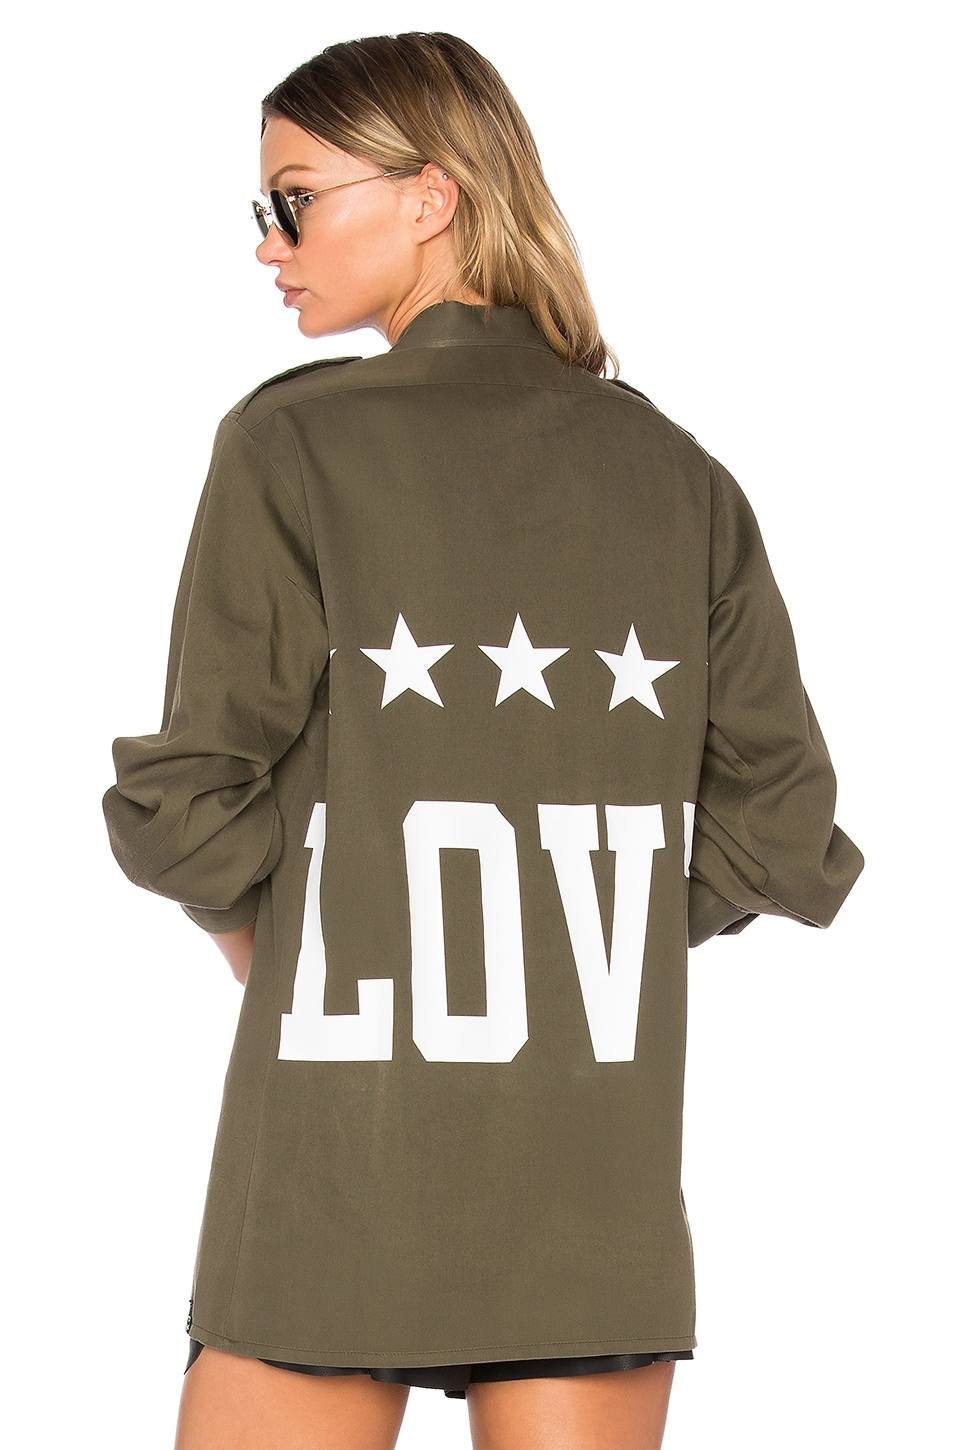 MPD BOX Love Shirt in Military